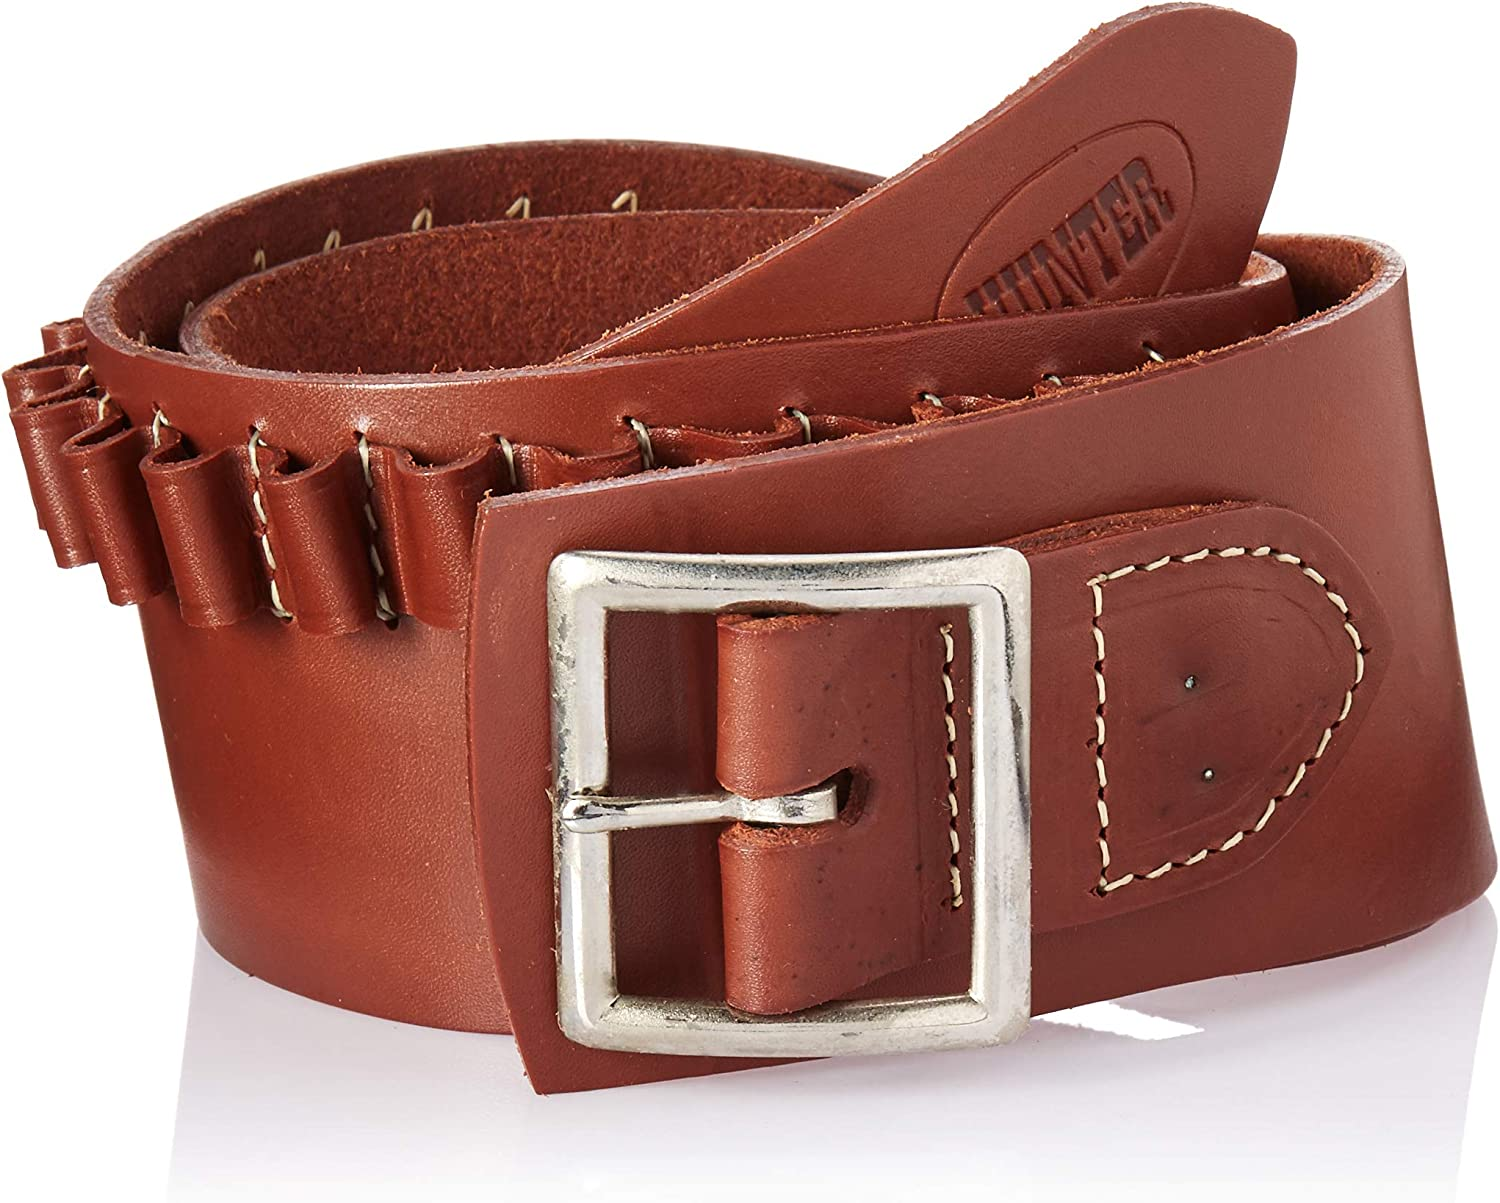 Hunter 0255RS Double Buscadero Belt, 45 Caliber Small, Brown